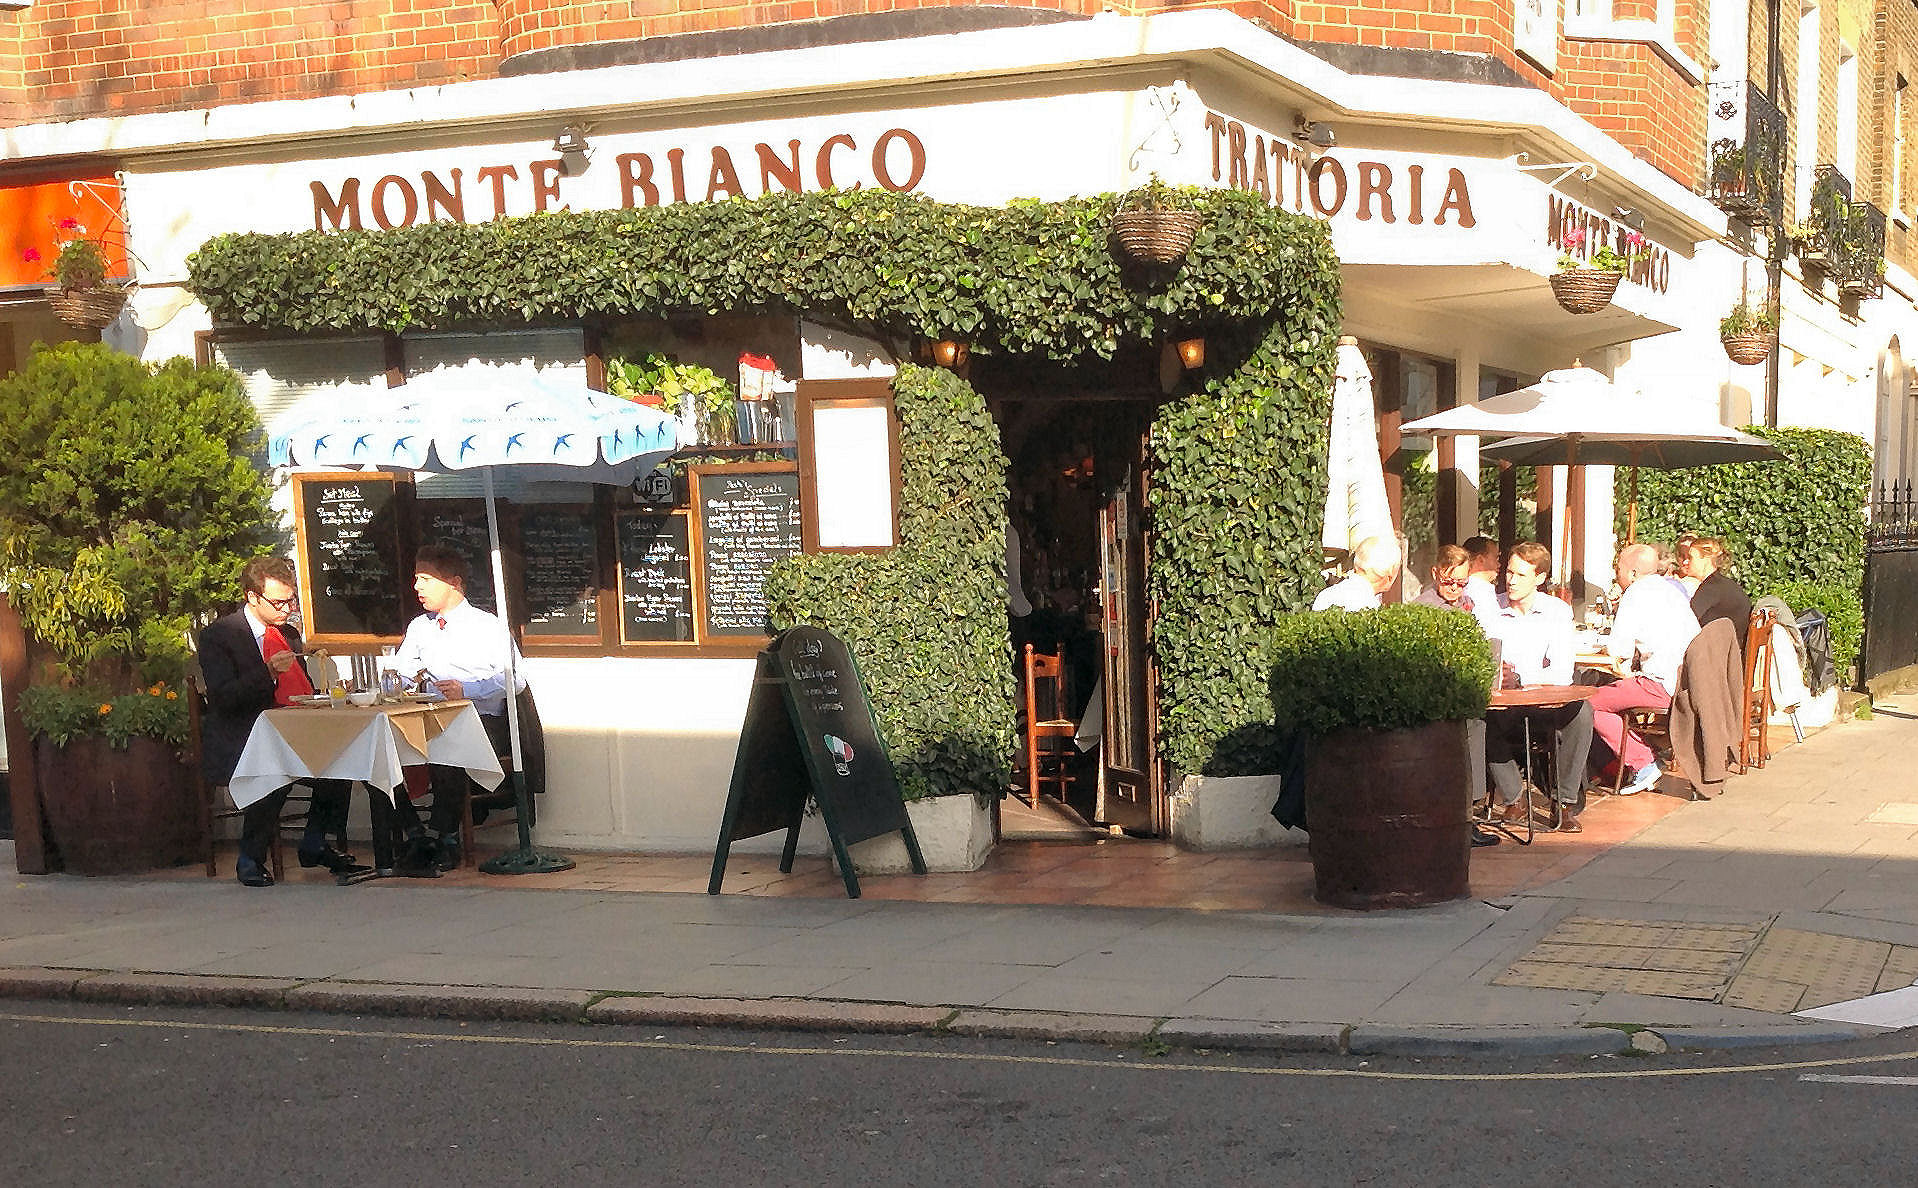 Reserve a table at Trattoria Monte Bianco